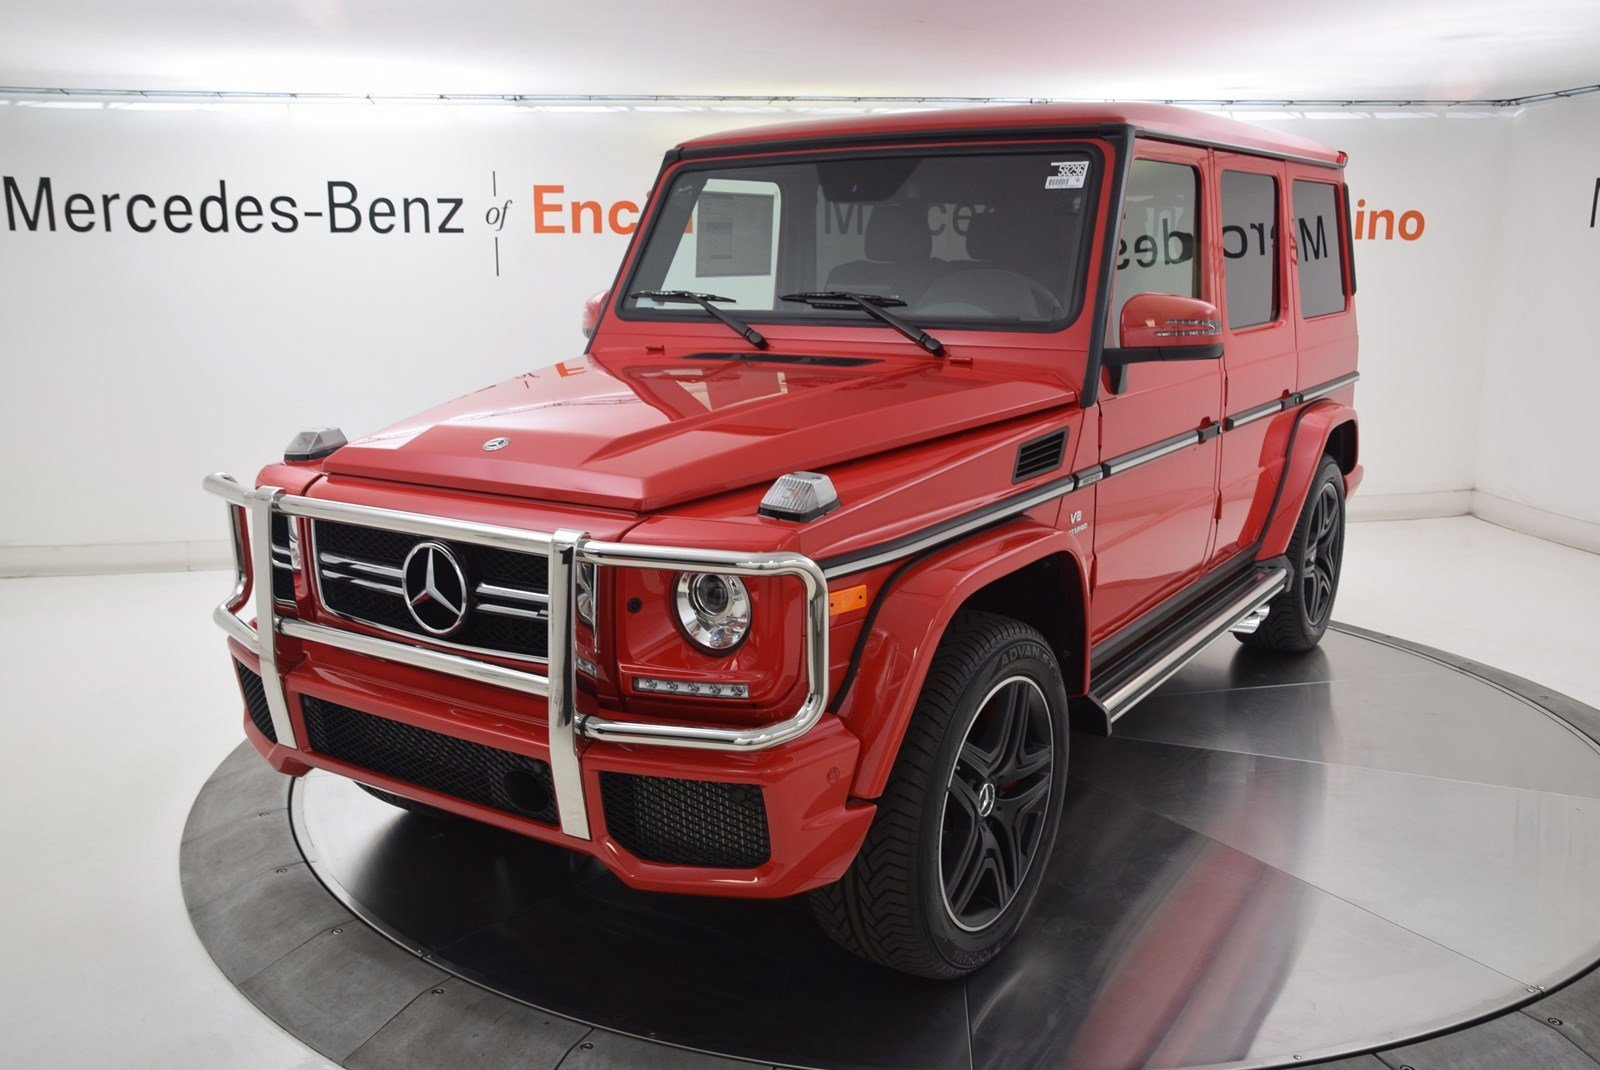 New 2018 mercedes benz g class amg g 63 suv suv in encino for Mercedes benz g class amg